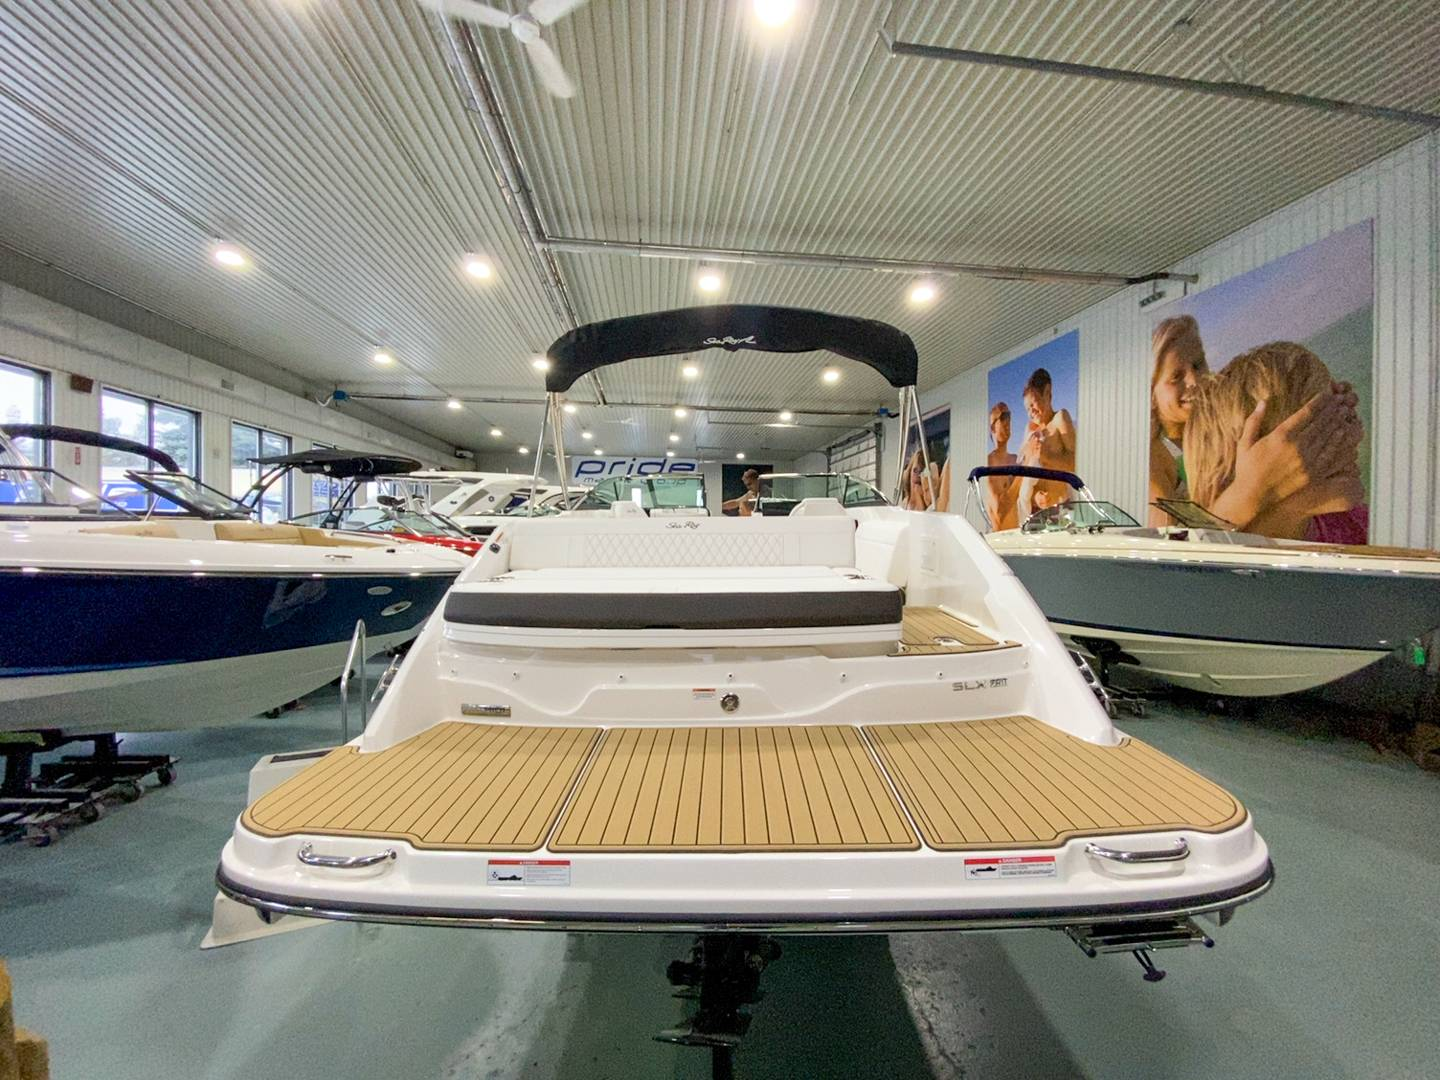 2021 Sea Ray boat for sale, model of the boat is SLX 250 & Image # 14 of 16